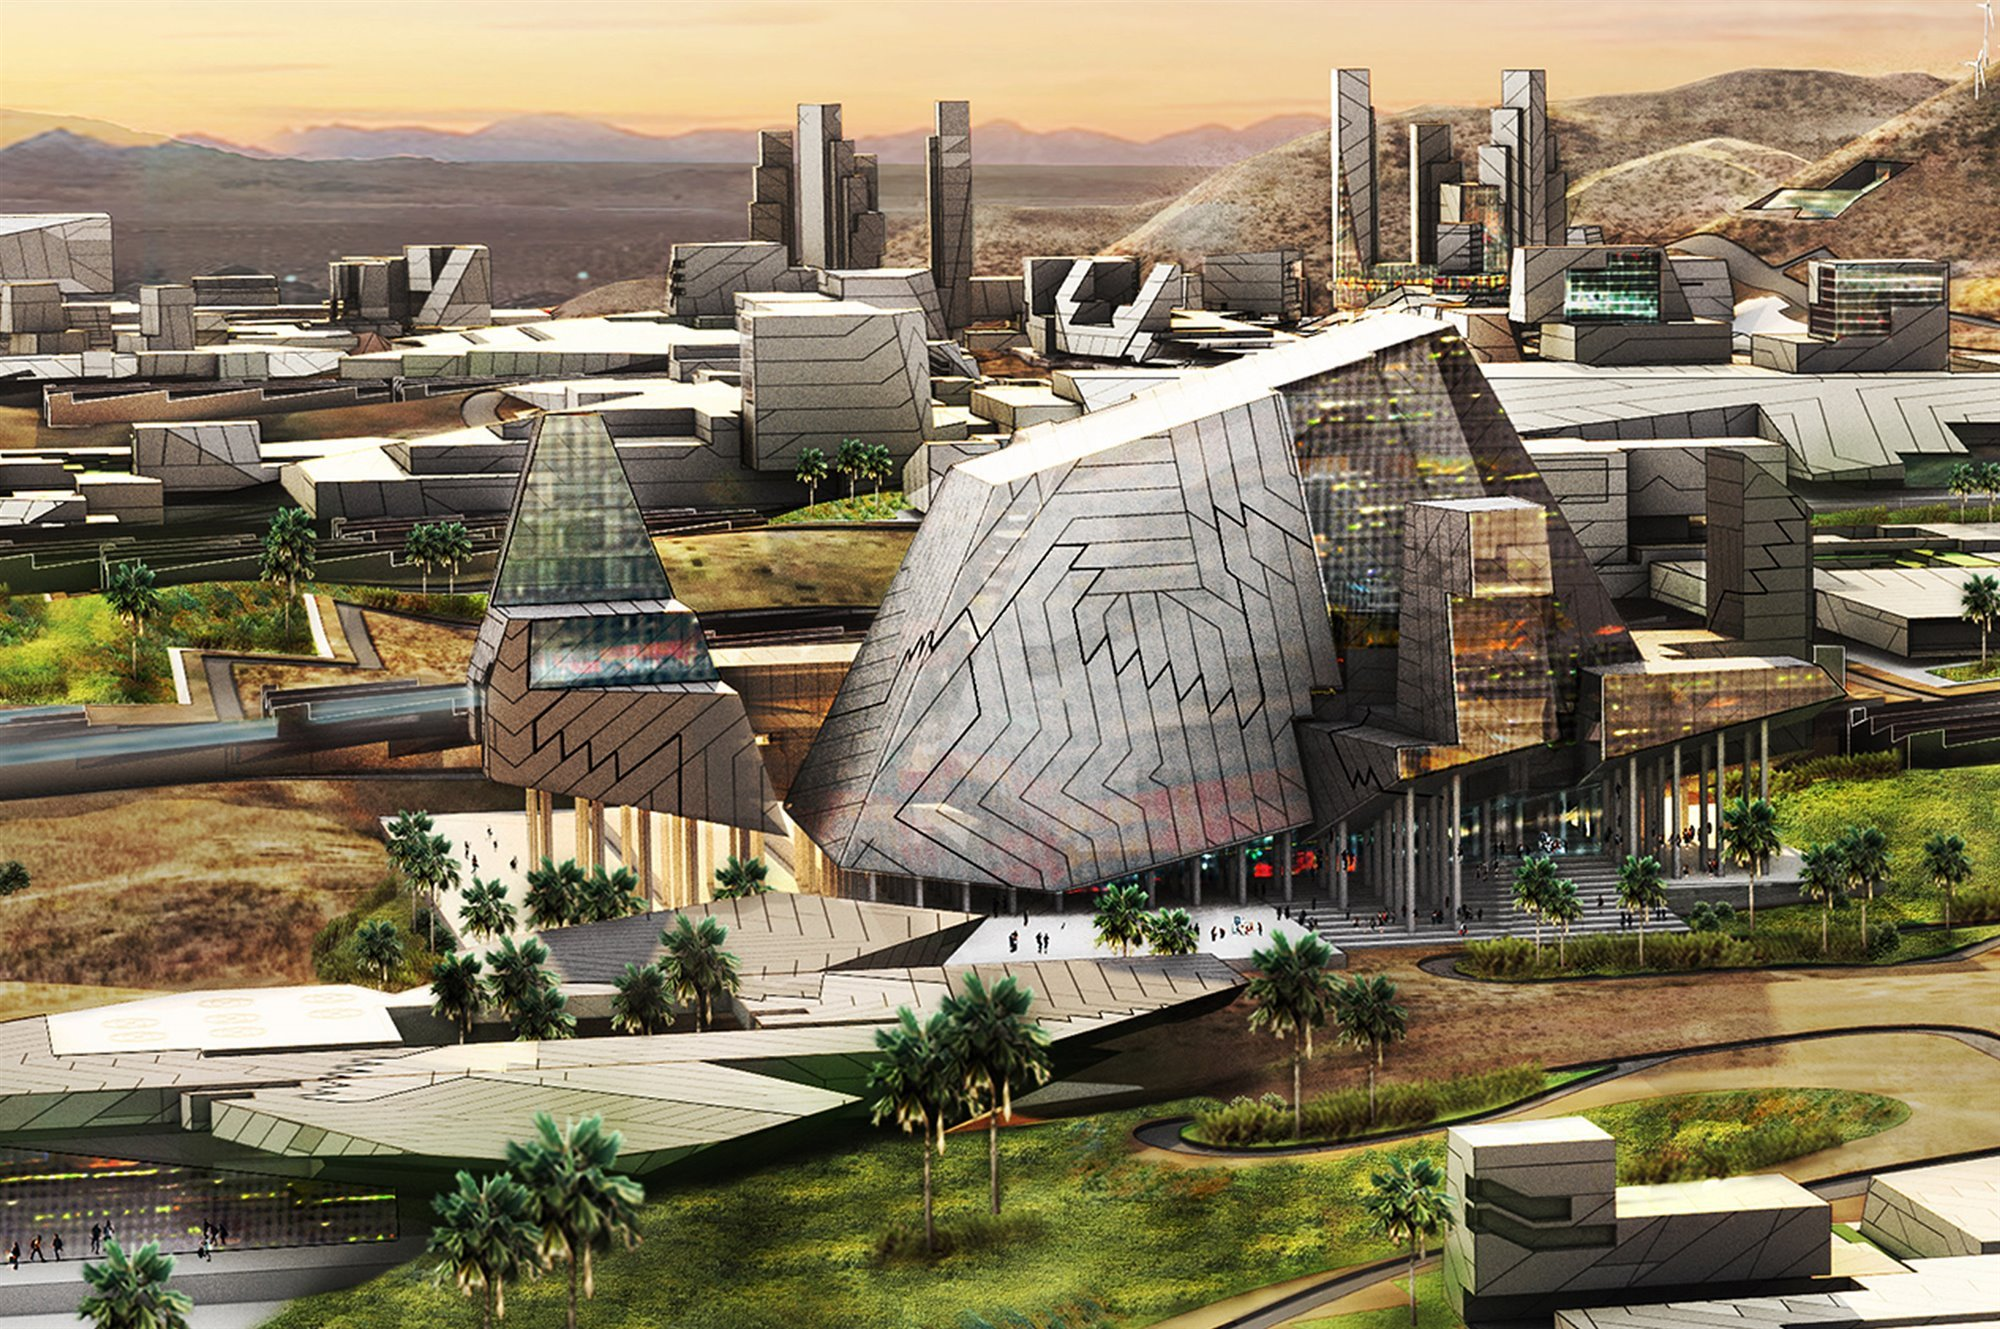 innovation-park-blockchains-smart-city-nevada-eyrc-architects-tom-wiscombe-architecture 3